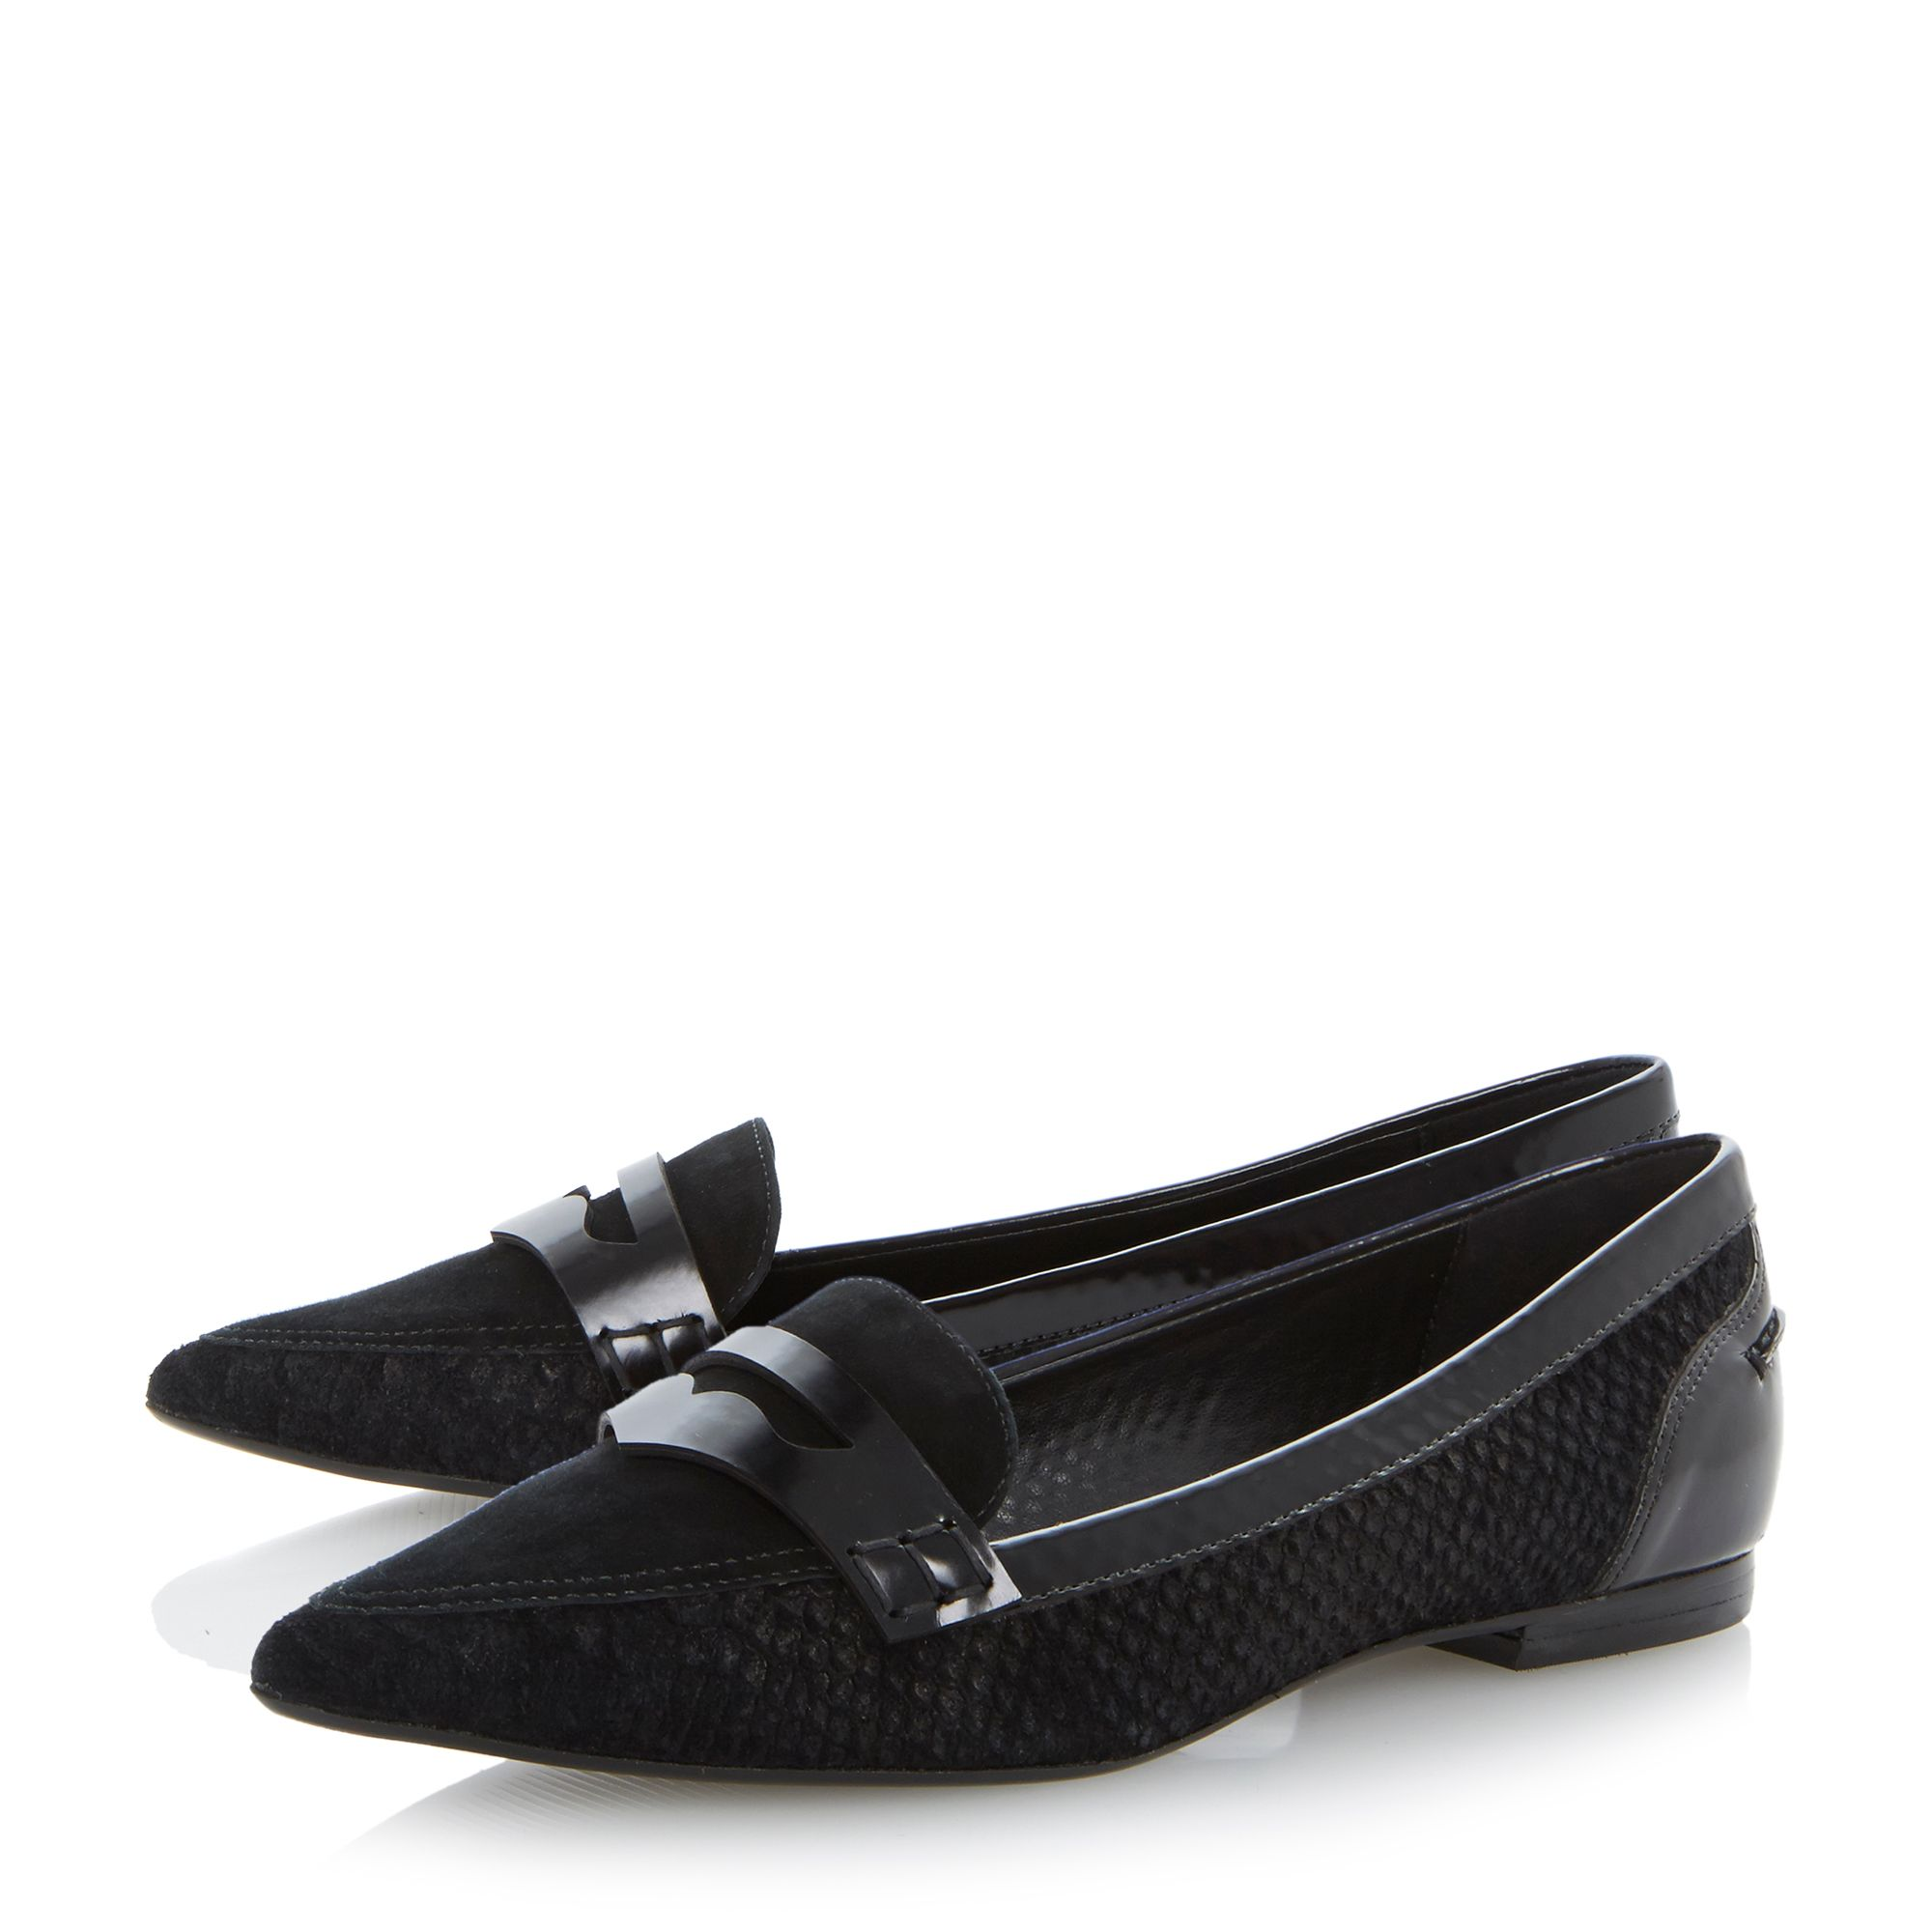 Lyndon pointed toe saddle trim leather loafers